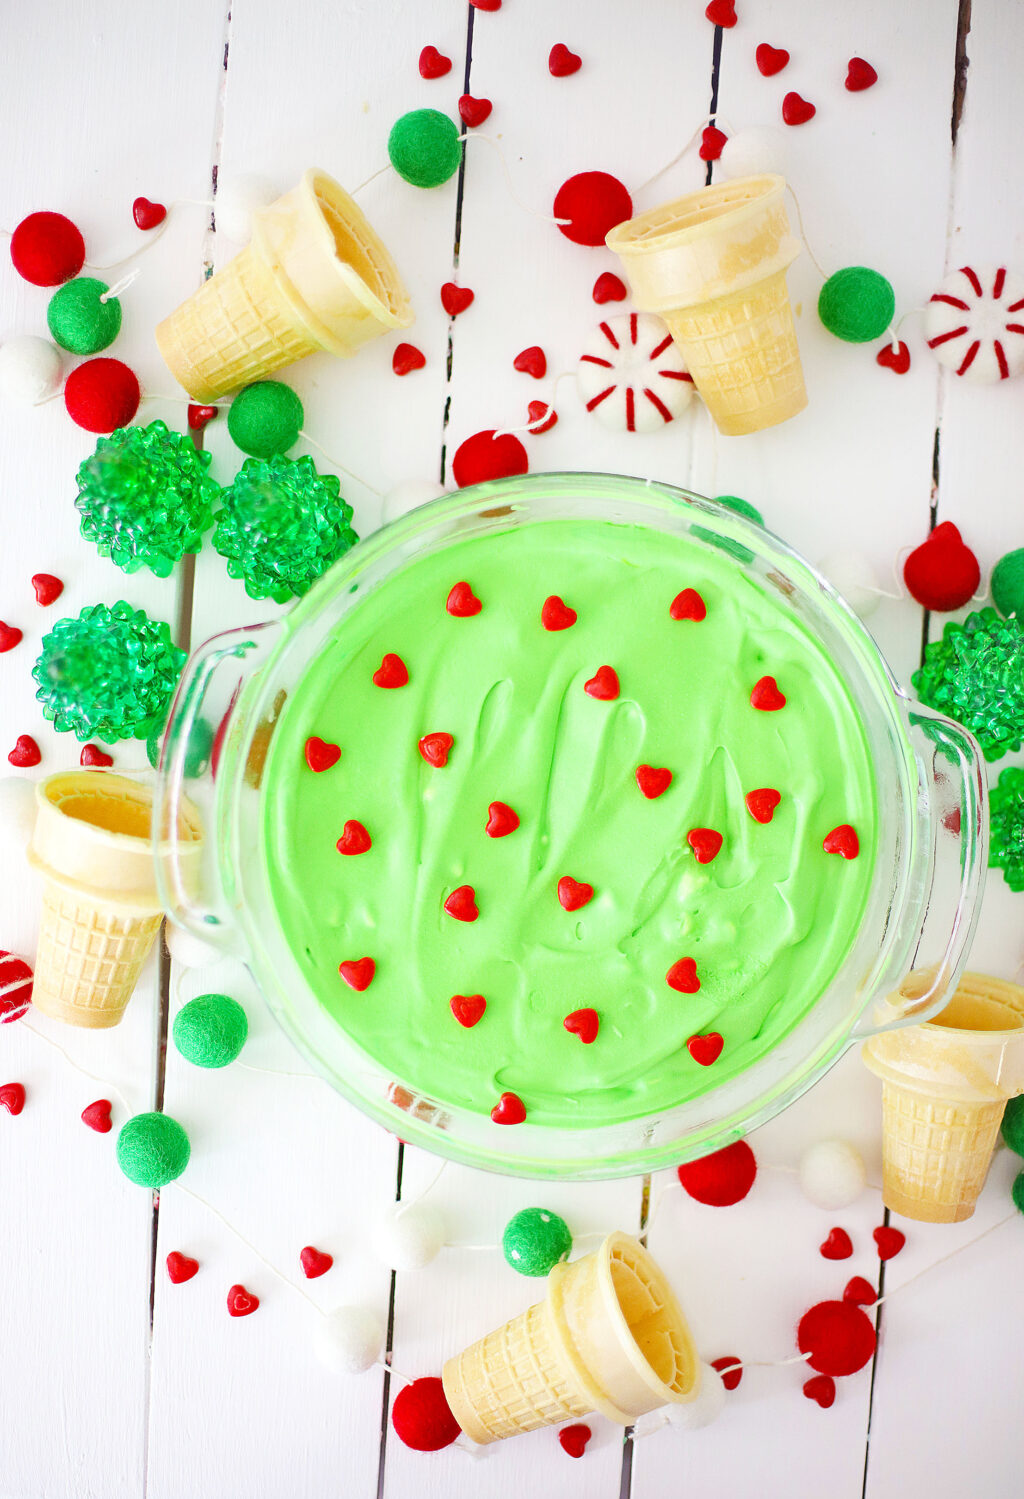 grinch ice cream in a large glass bowl